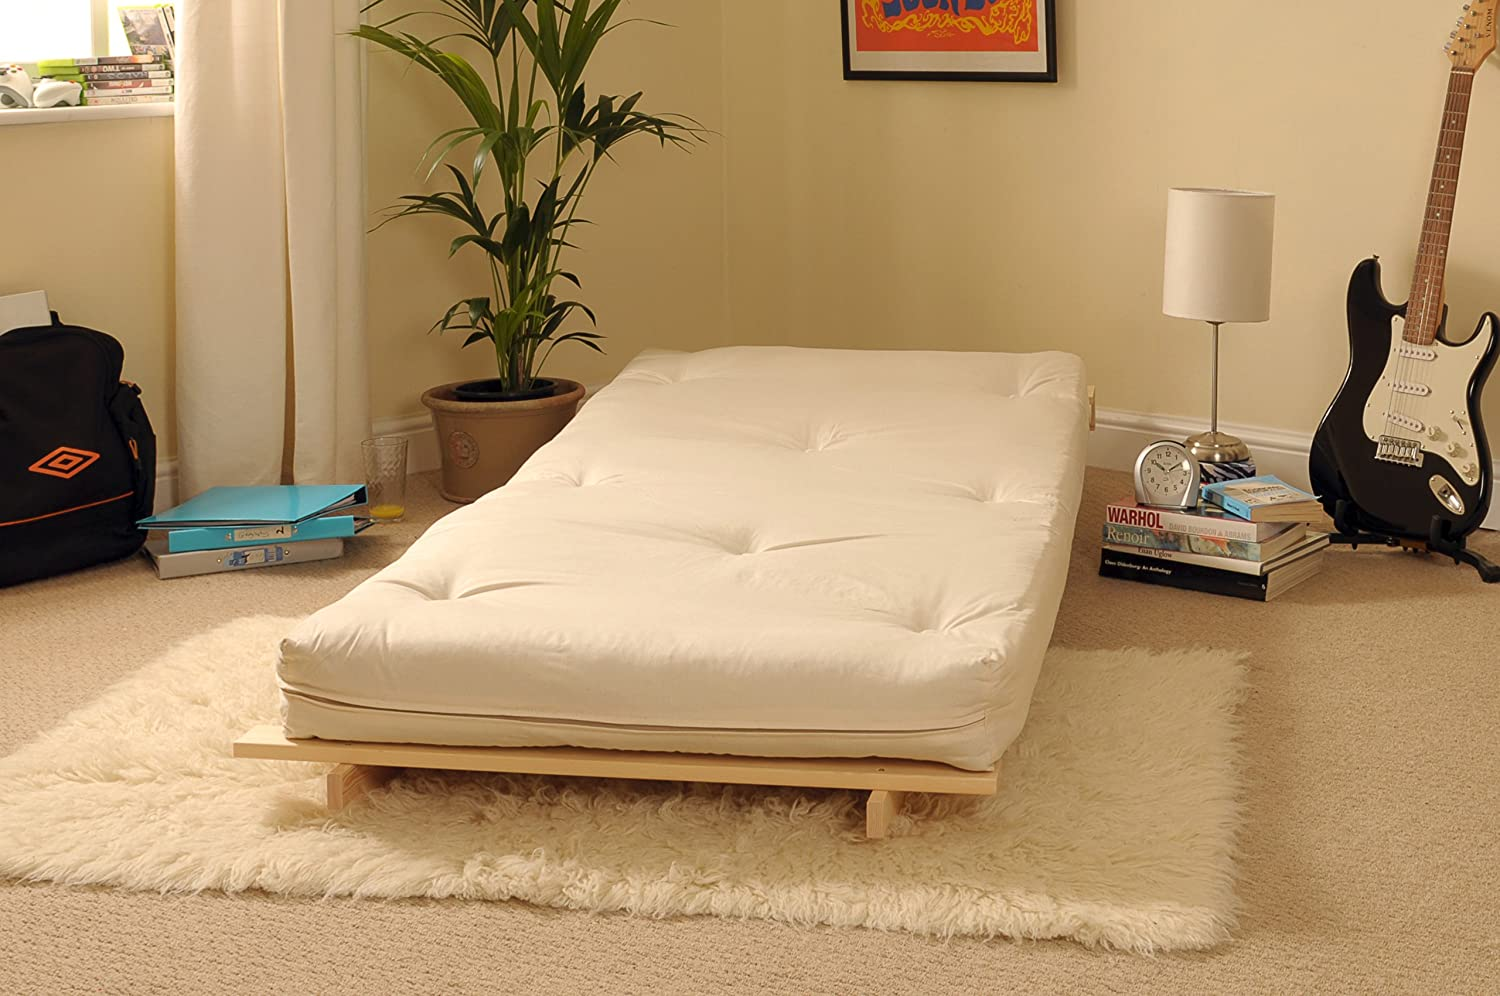 2ft6 Small Single Wooden Futon Set with Natural Cream Mattress:  Amazon.co.uk: Kitchen & Home